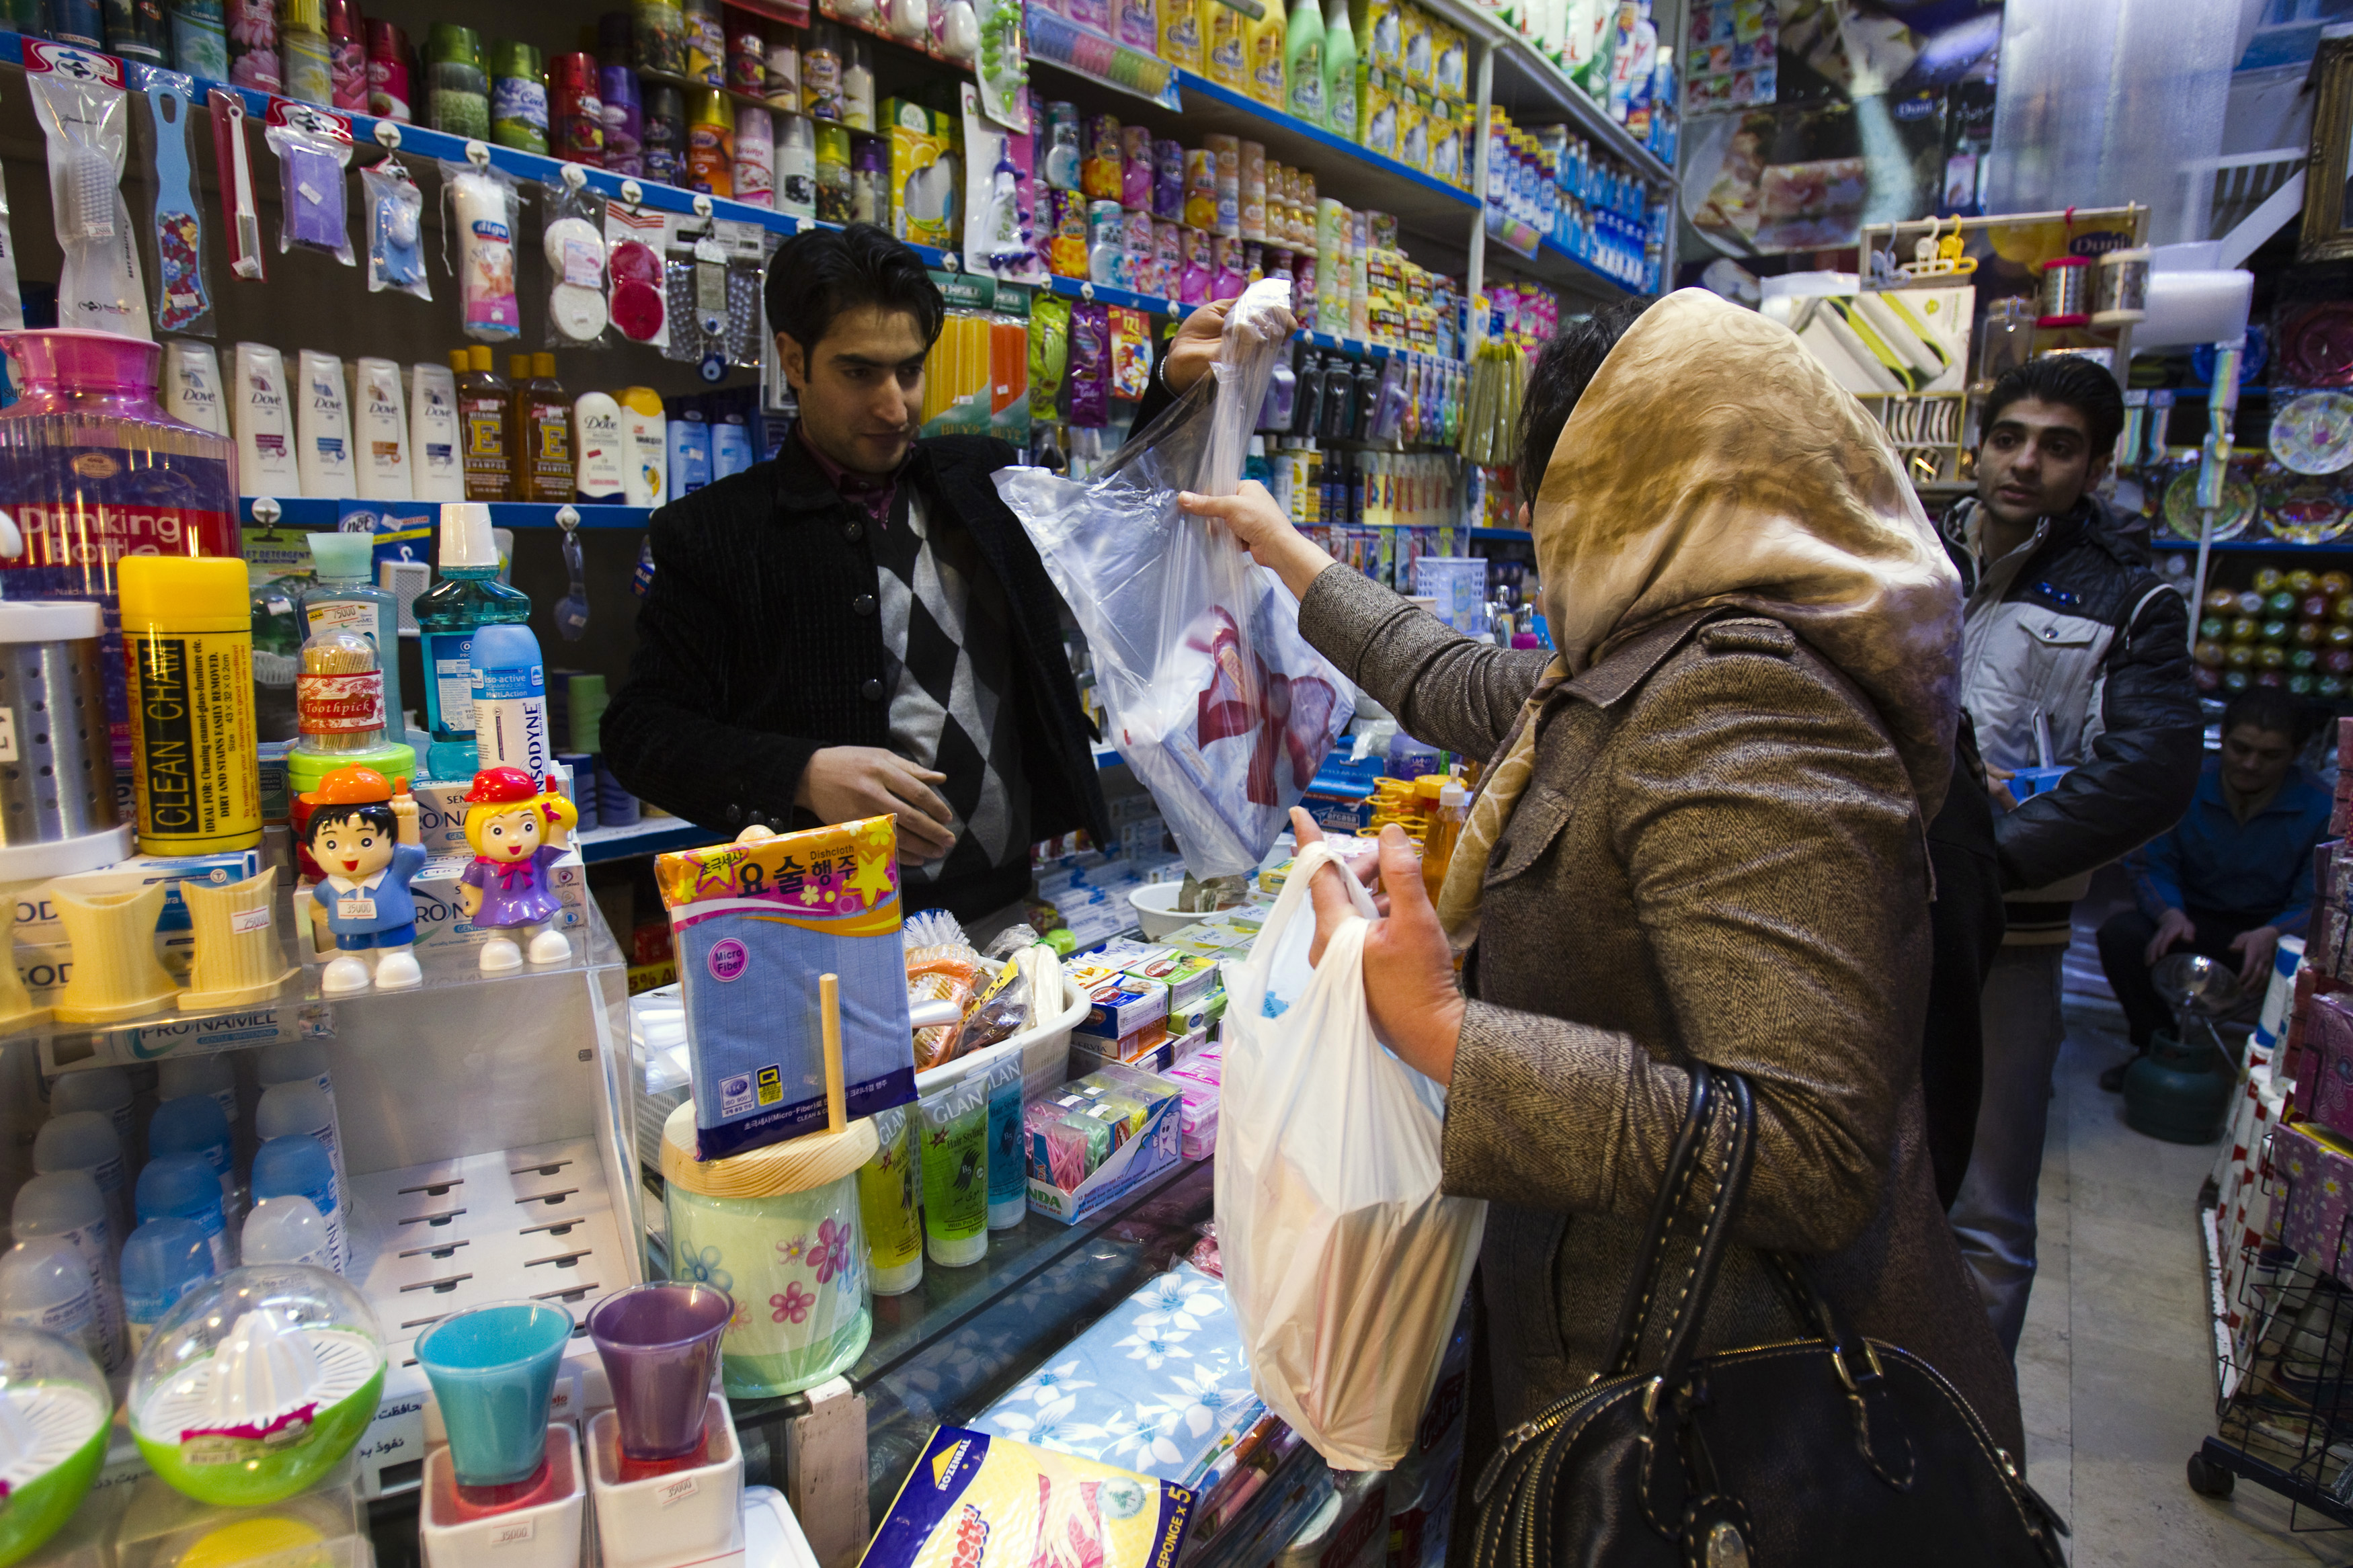 A woman makes a purchase at a store in Tehran.